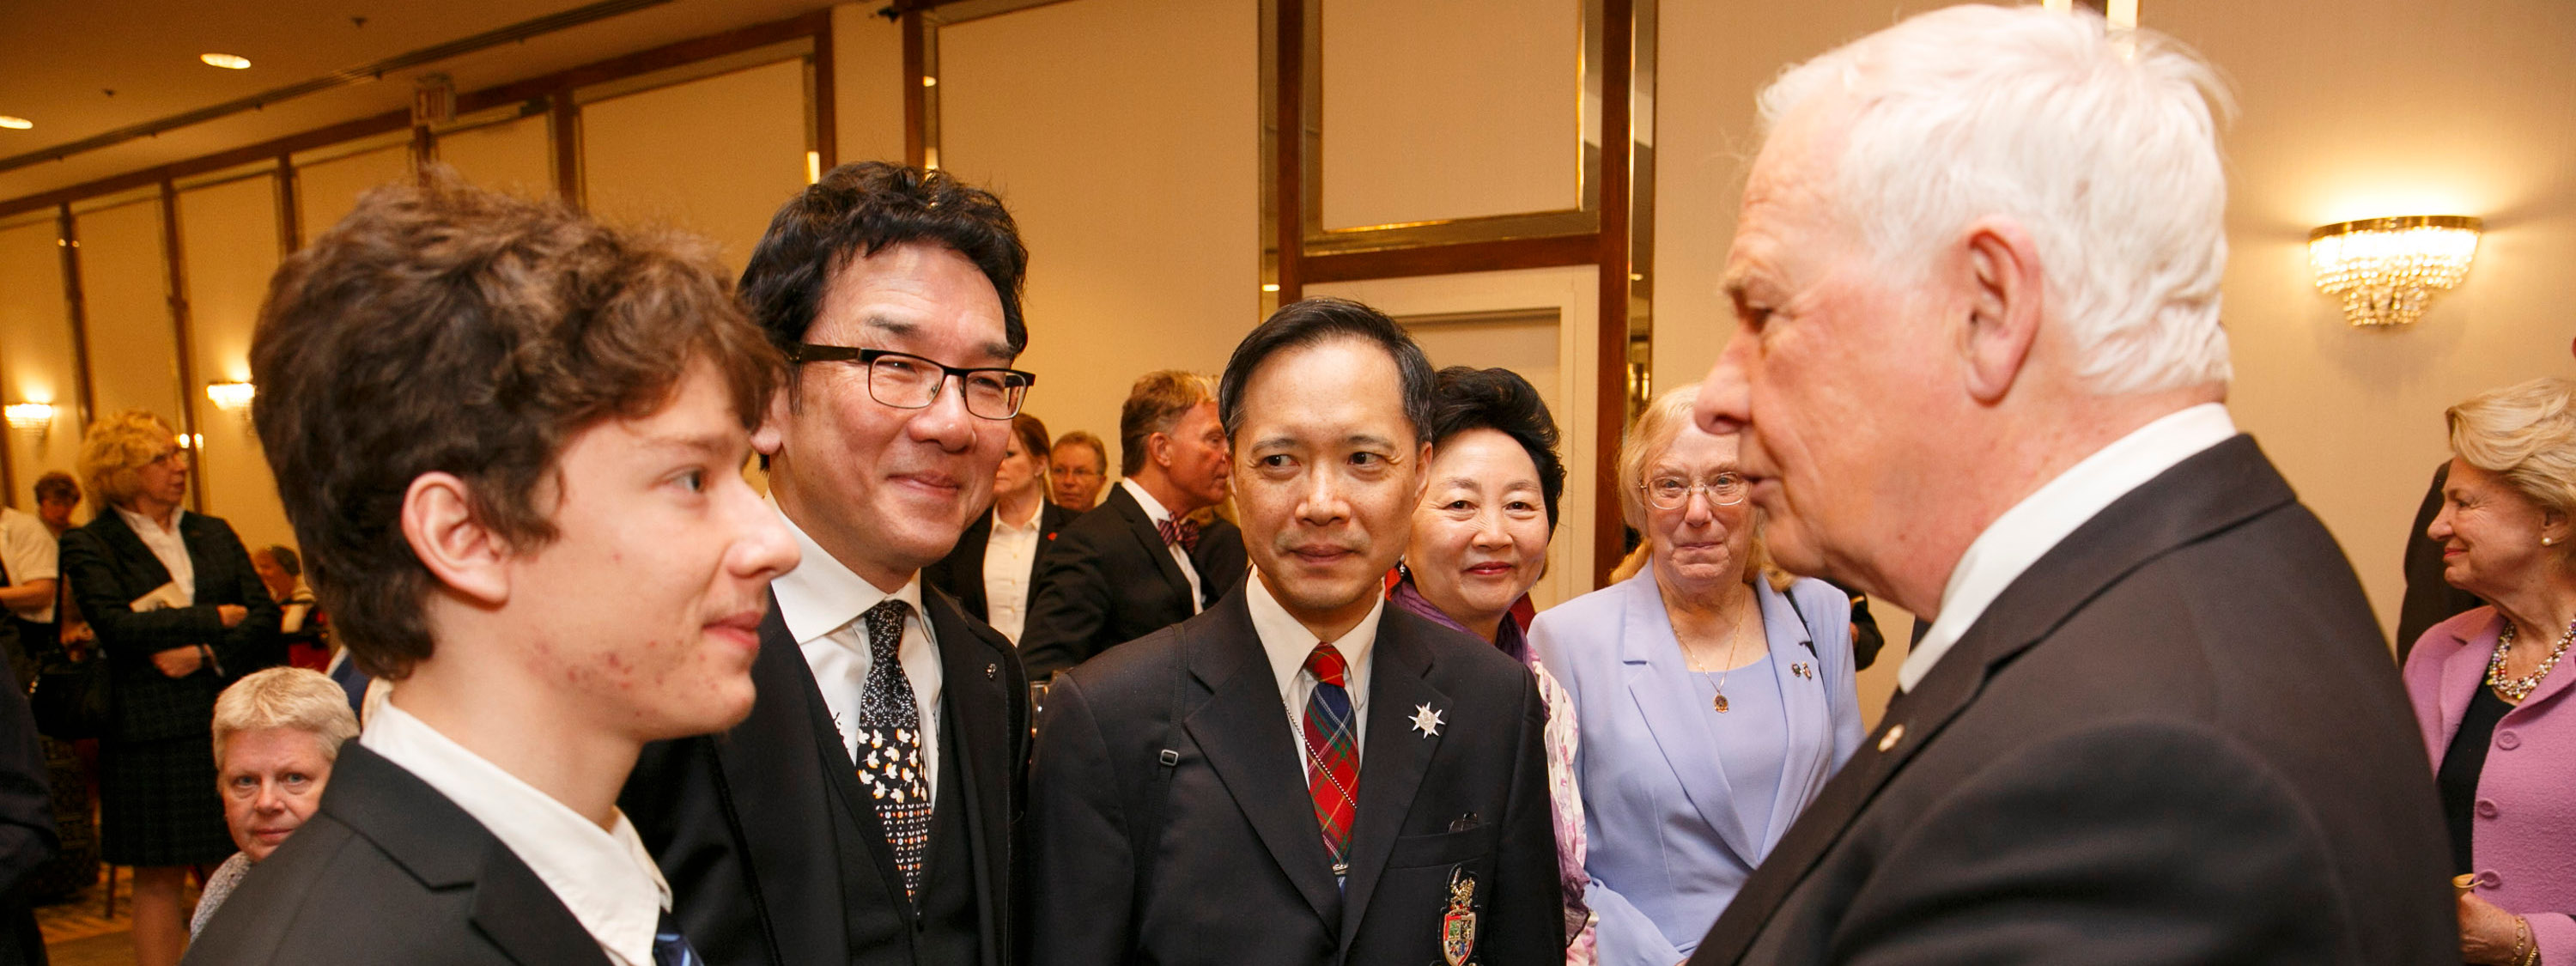 League Members Meet the Governor General